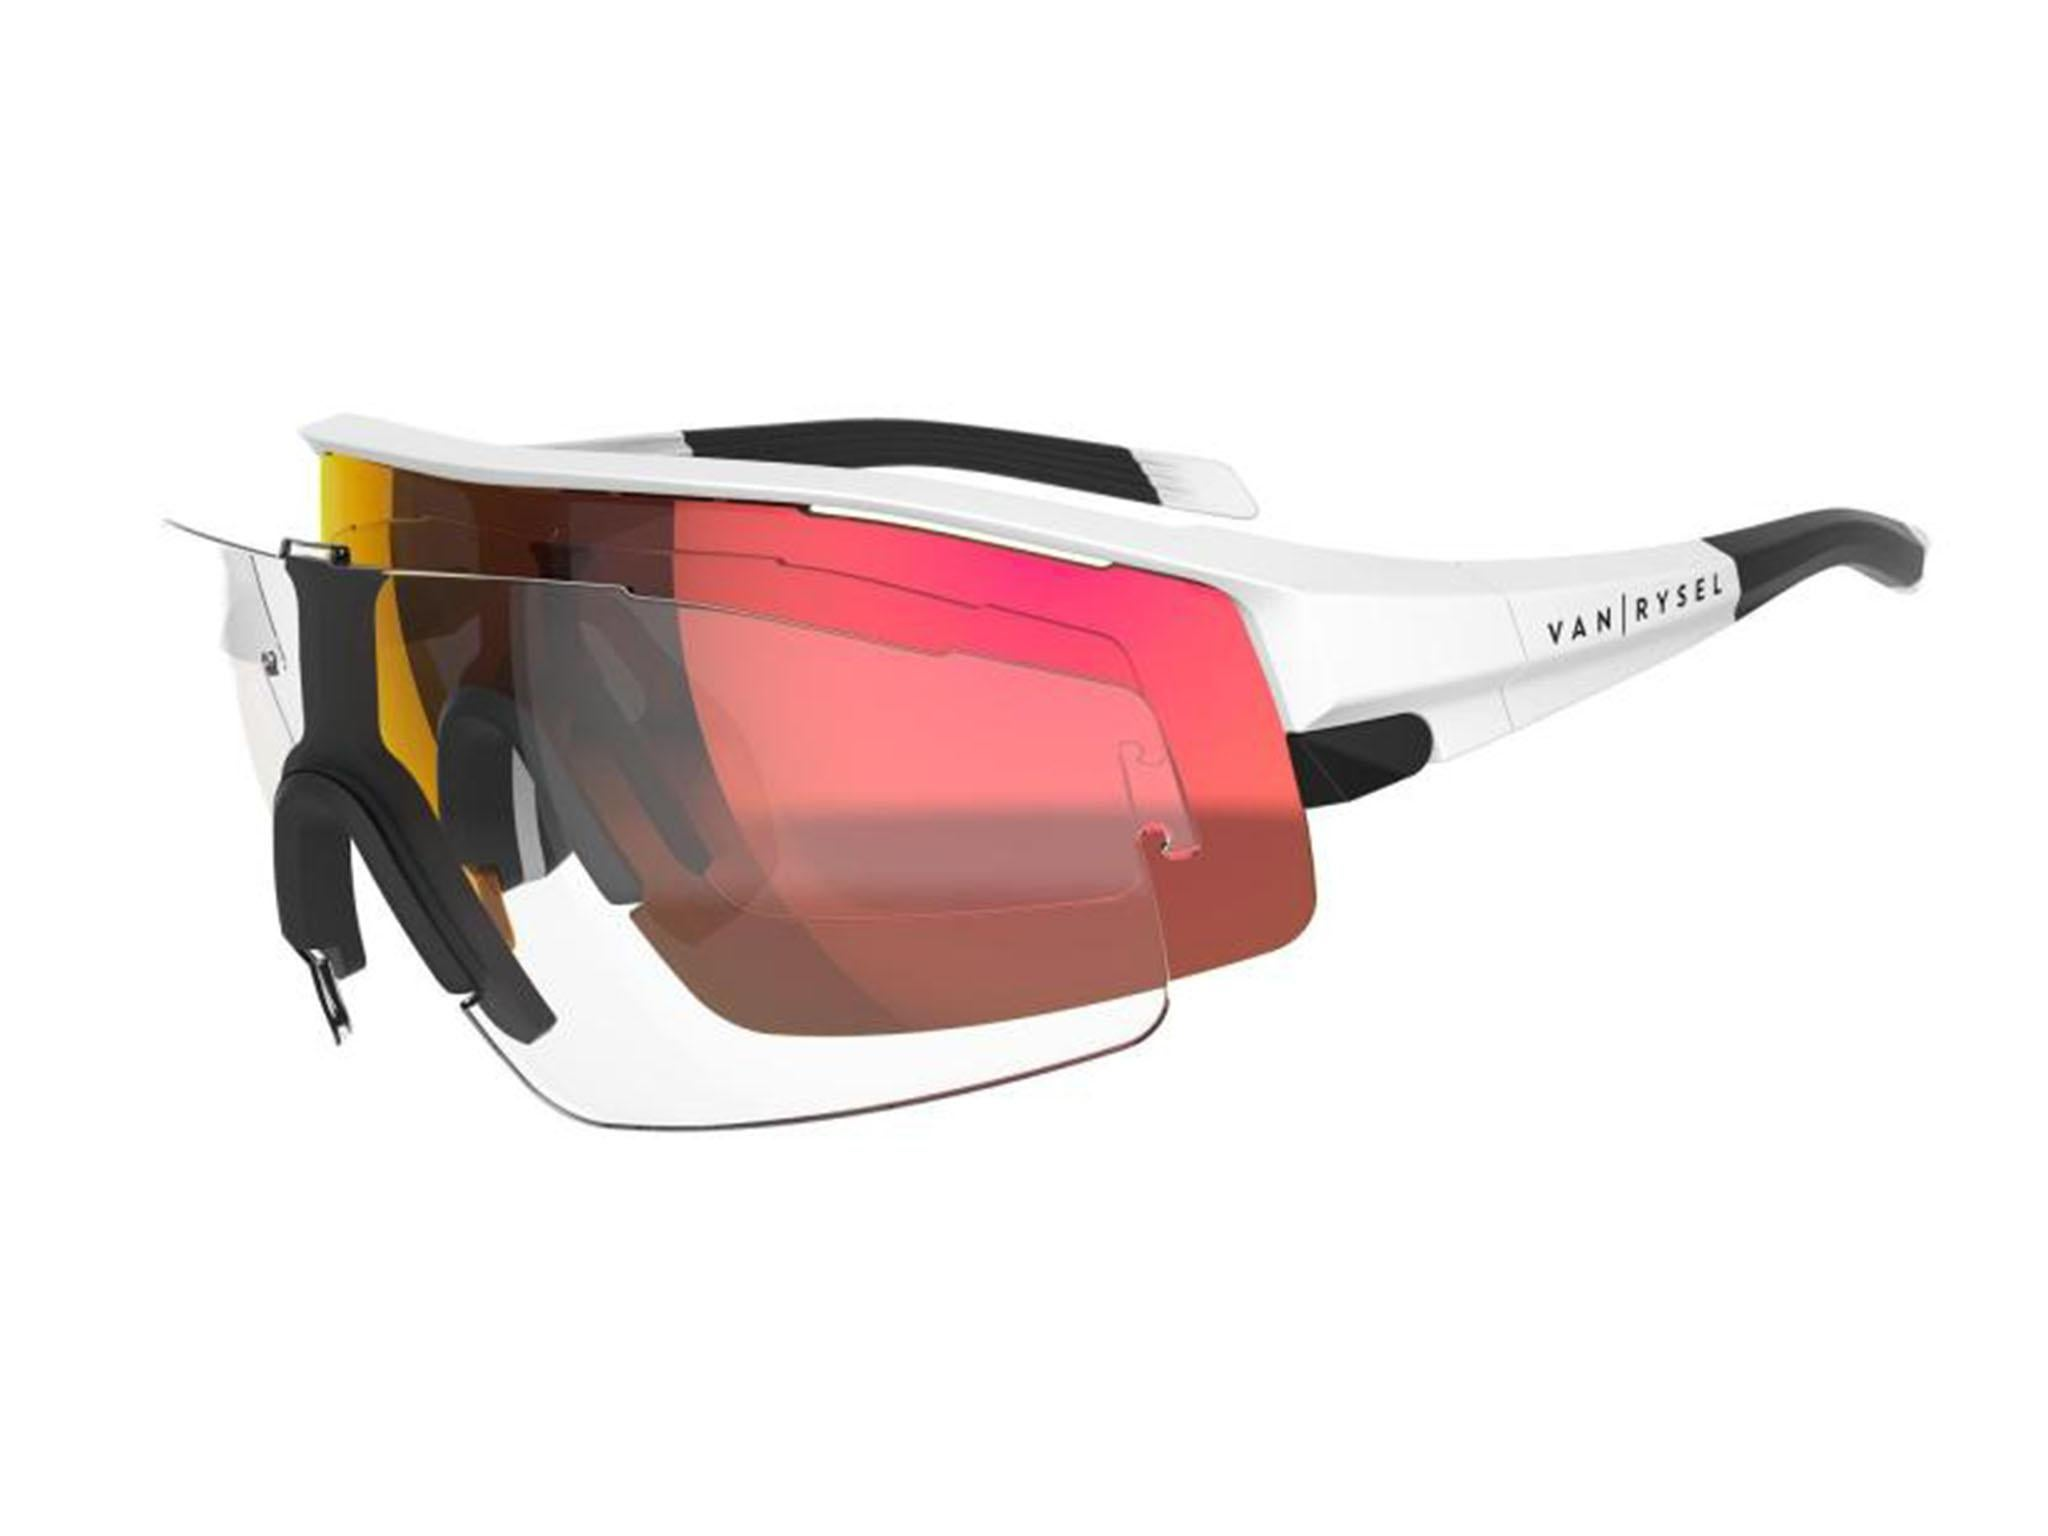 Best Cycling Glasses For Uv Water And Wind Protection